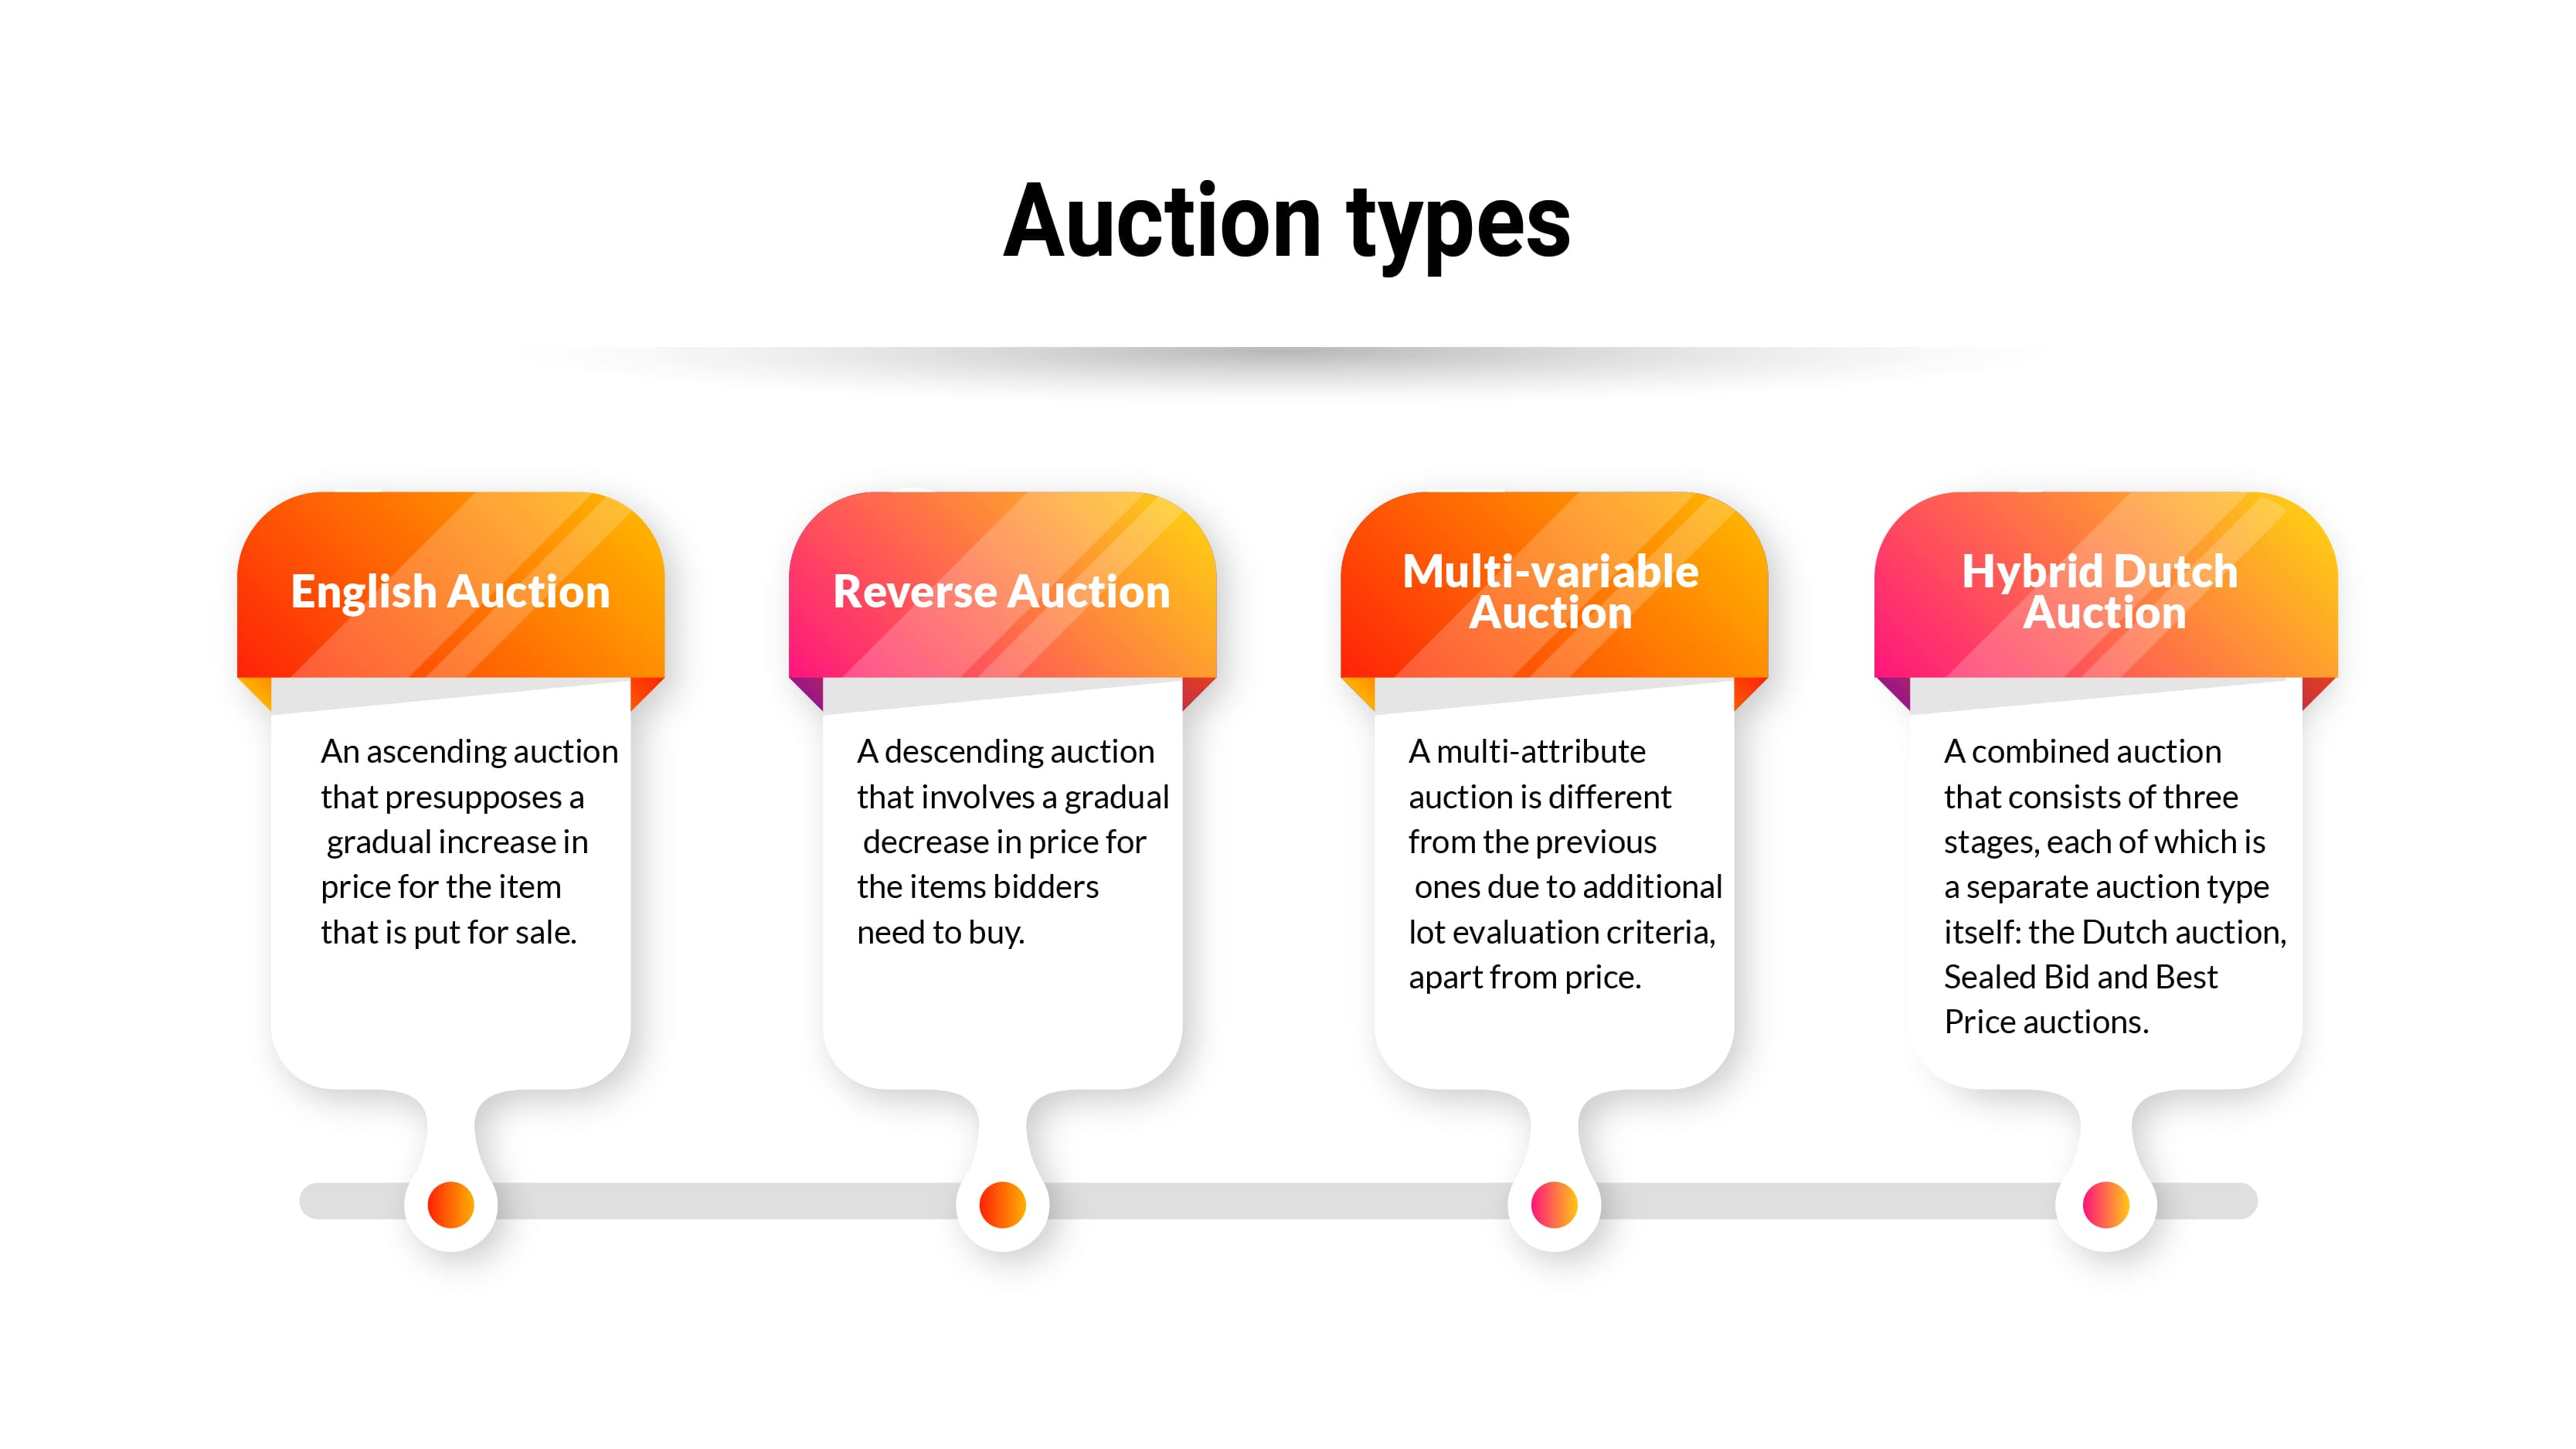 Auction types. English Auction.  An ascending auction that presupposes a gradual increase in price for the item that is put for sale. Reverse Auction. A descending auction that involves a gradual decrease in price for the items bidders need to buy. Multi-variable Auction. A multi-attribute auction is different from the previous ones due to additional lot evaluation criteria, apart from price. Hybrid Dutch Auction. A combined auction that consists of three stages, each of which is a separate auction type itself: the Dutch auction, Sealed Bid and Best Price auctions.